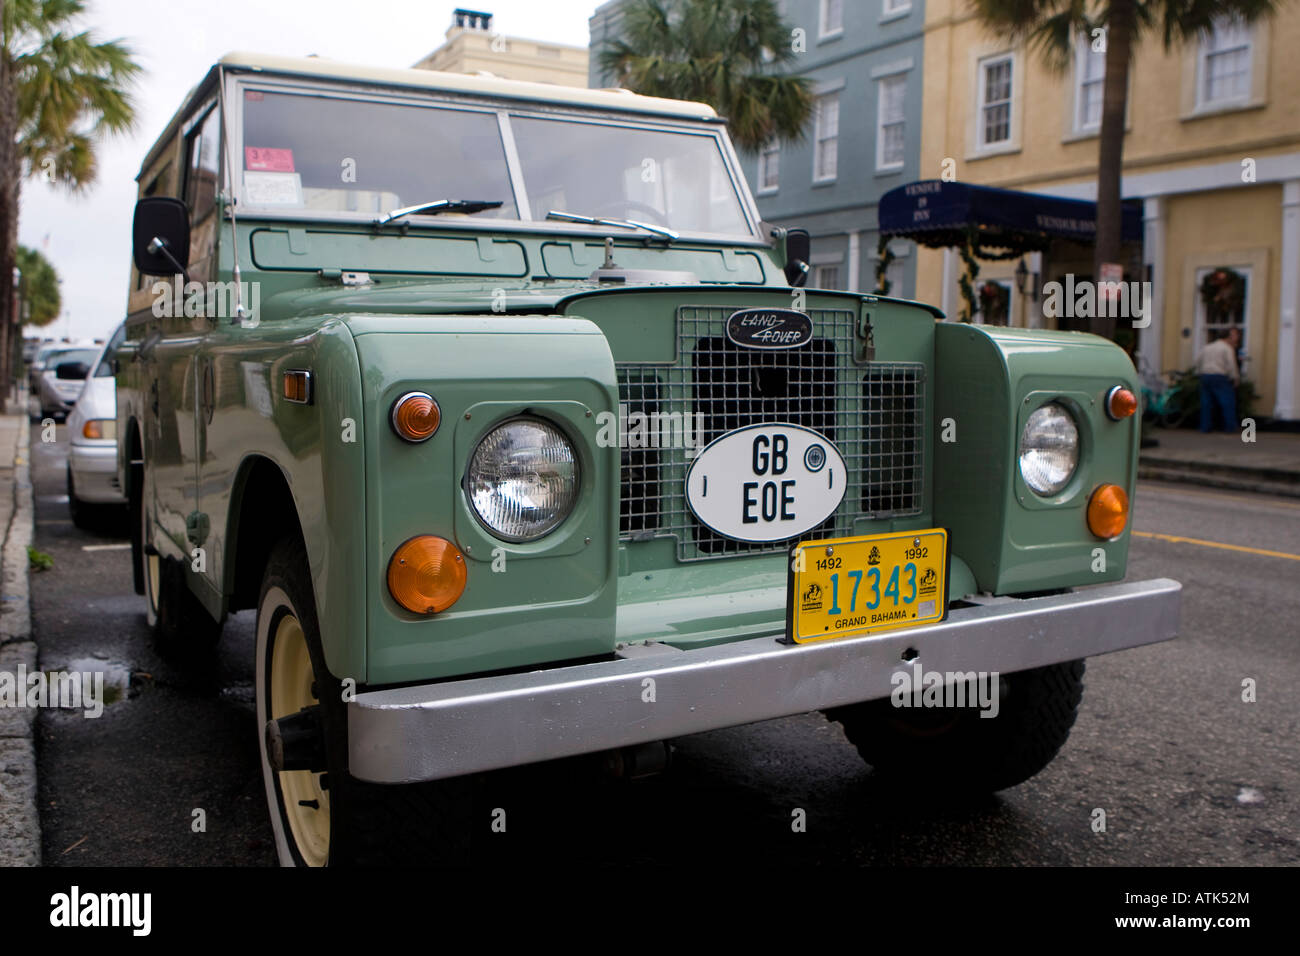 A Land Rover Series IIA parked along Vendue Range Charleston SC December 30 2007 - Stock Image